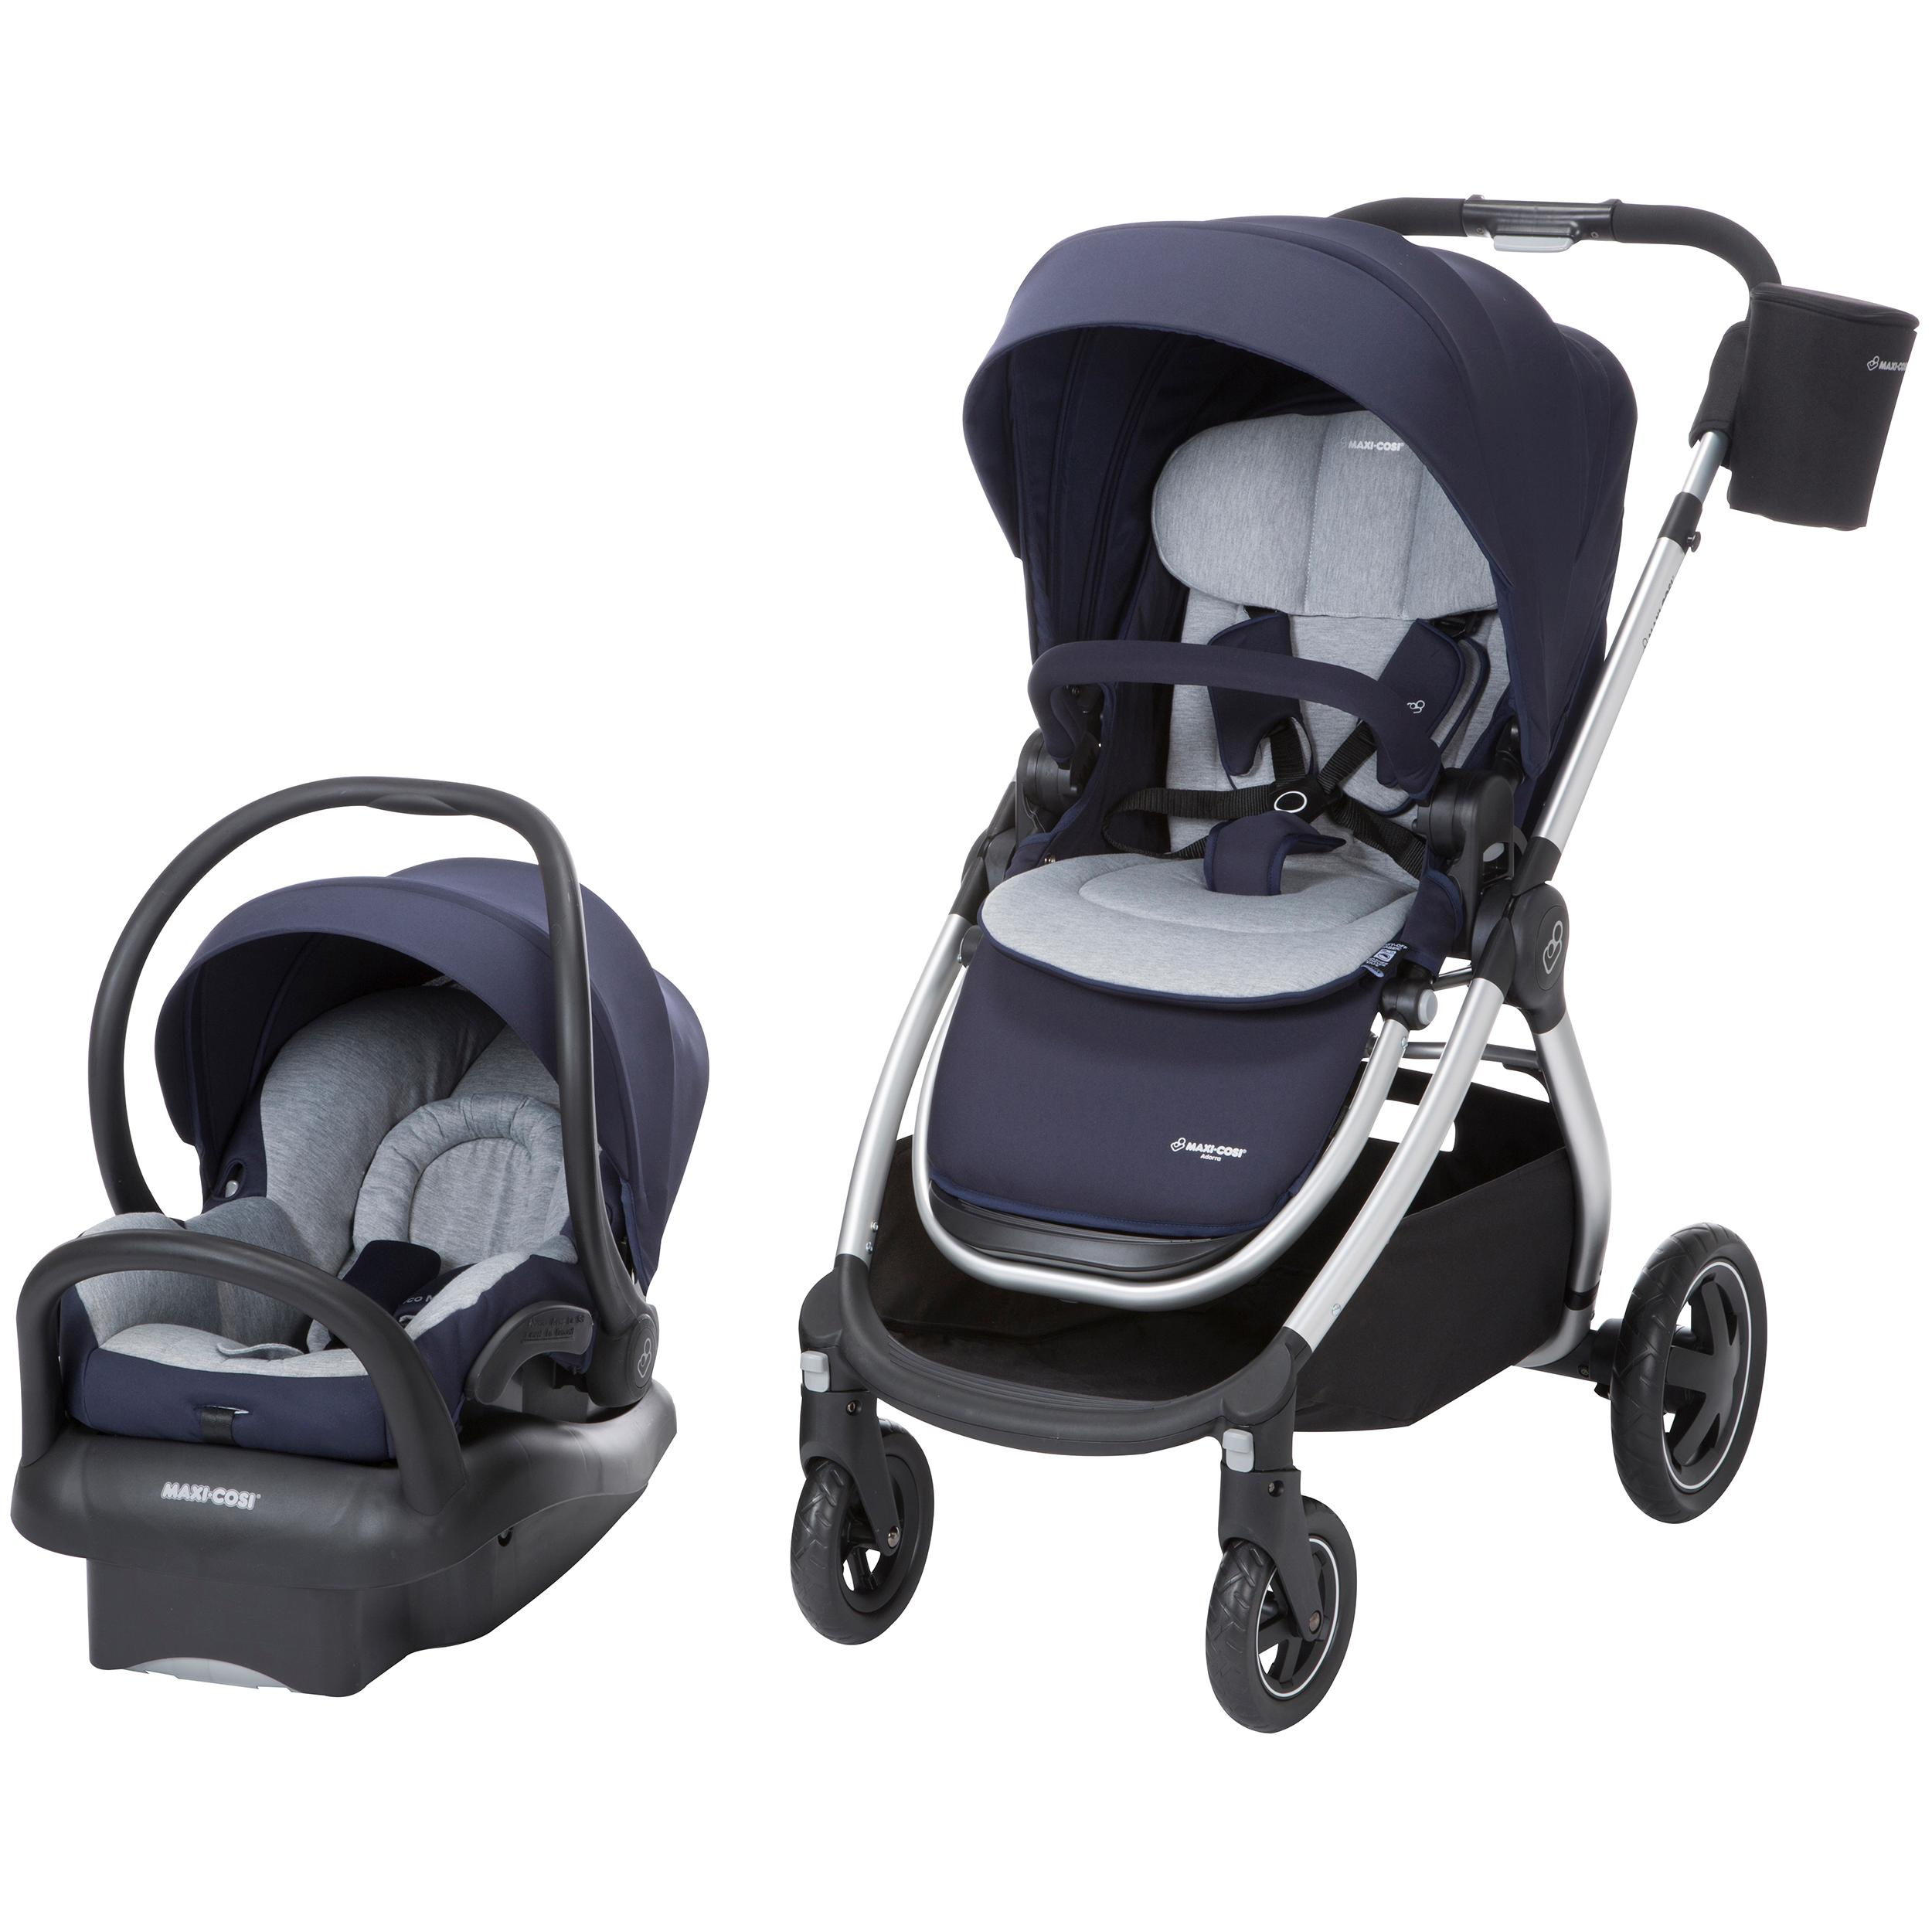 maxi cosi adorra modular 5 in 1 travel system with mico max 30 infant car seat. Black Bedroom Furniture Sets. Home Design Ideas